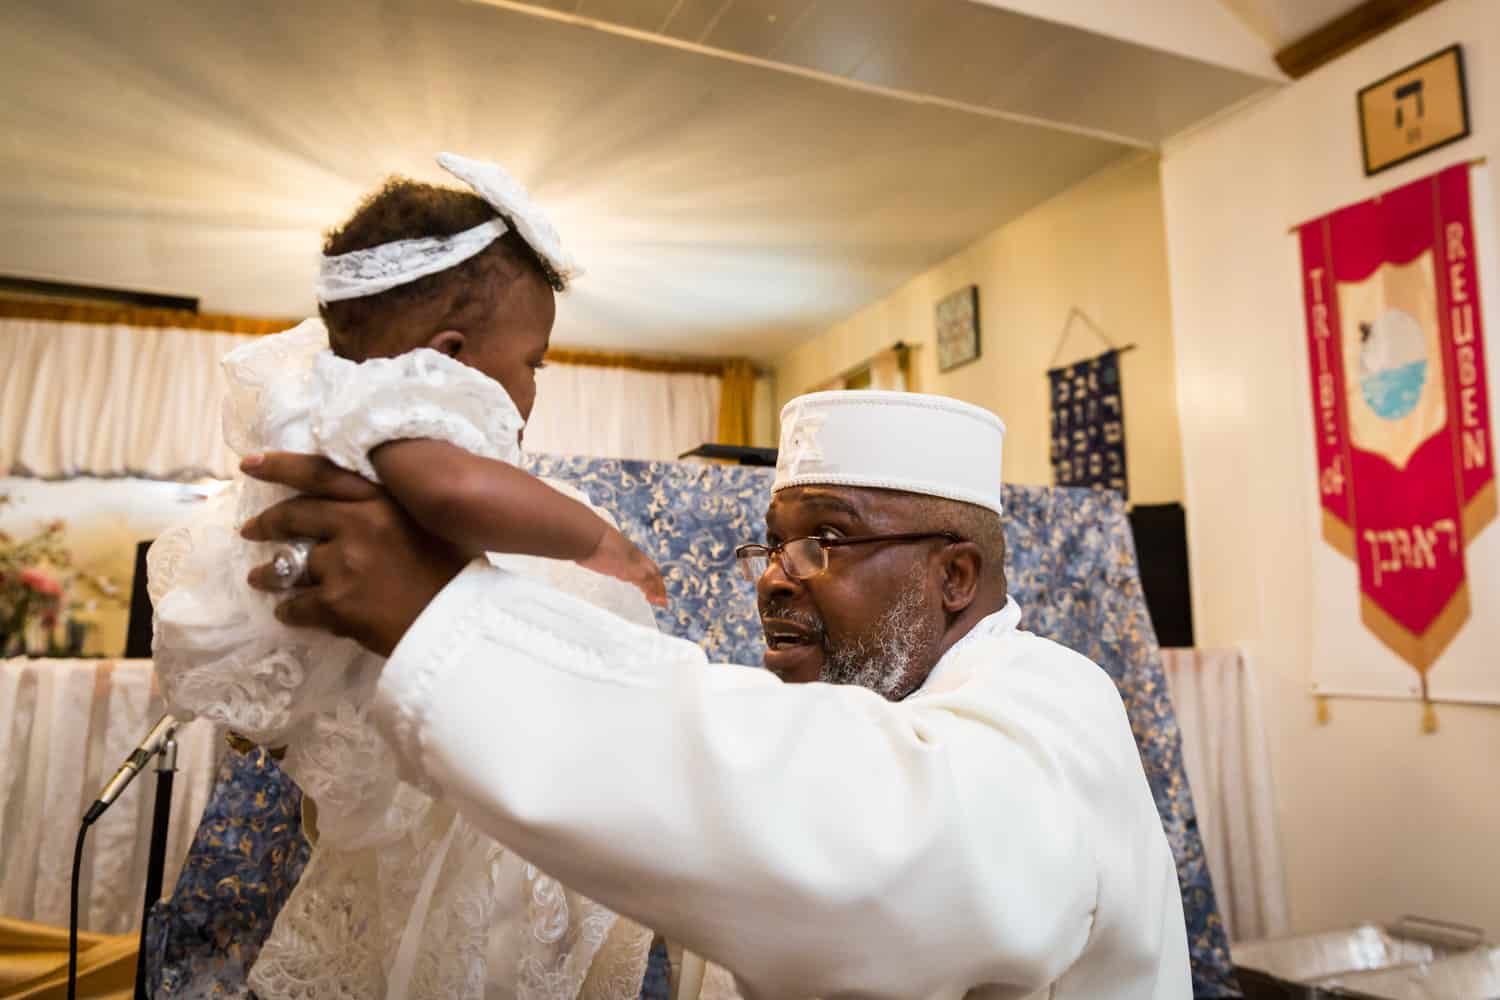 Pastor in white robes holding baby during Jamaica christening